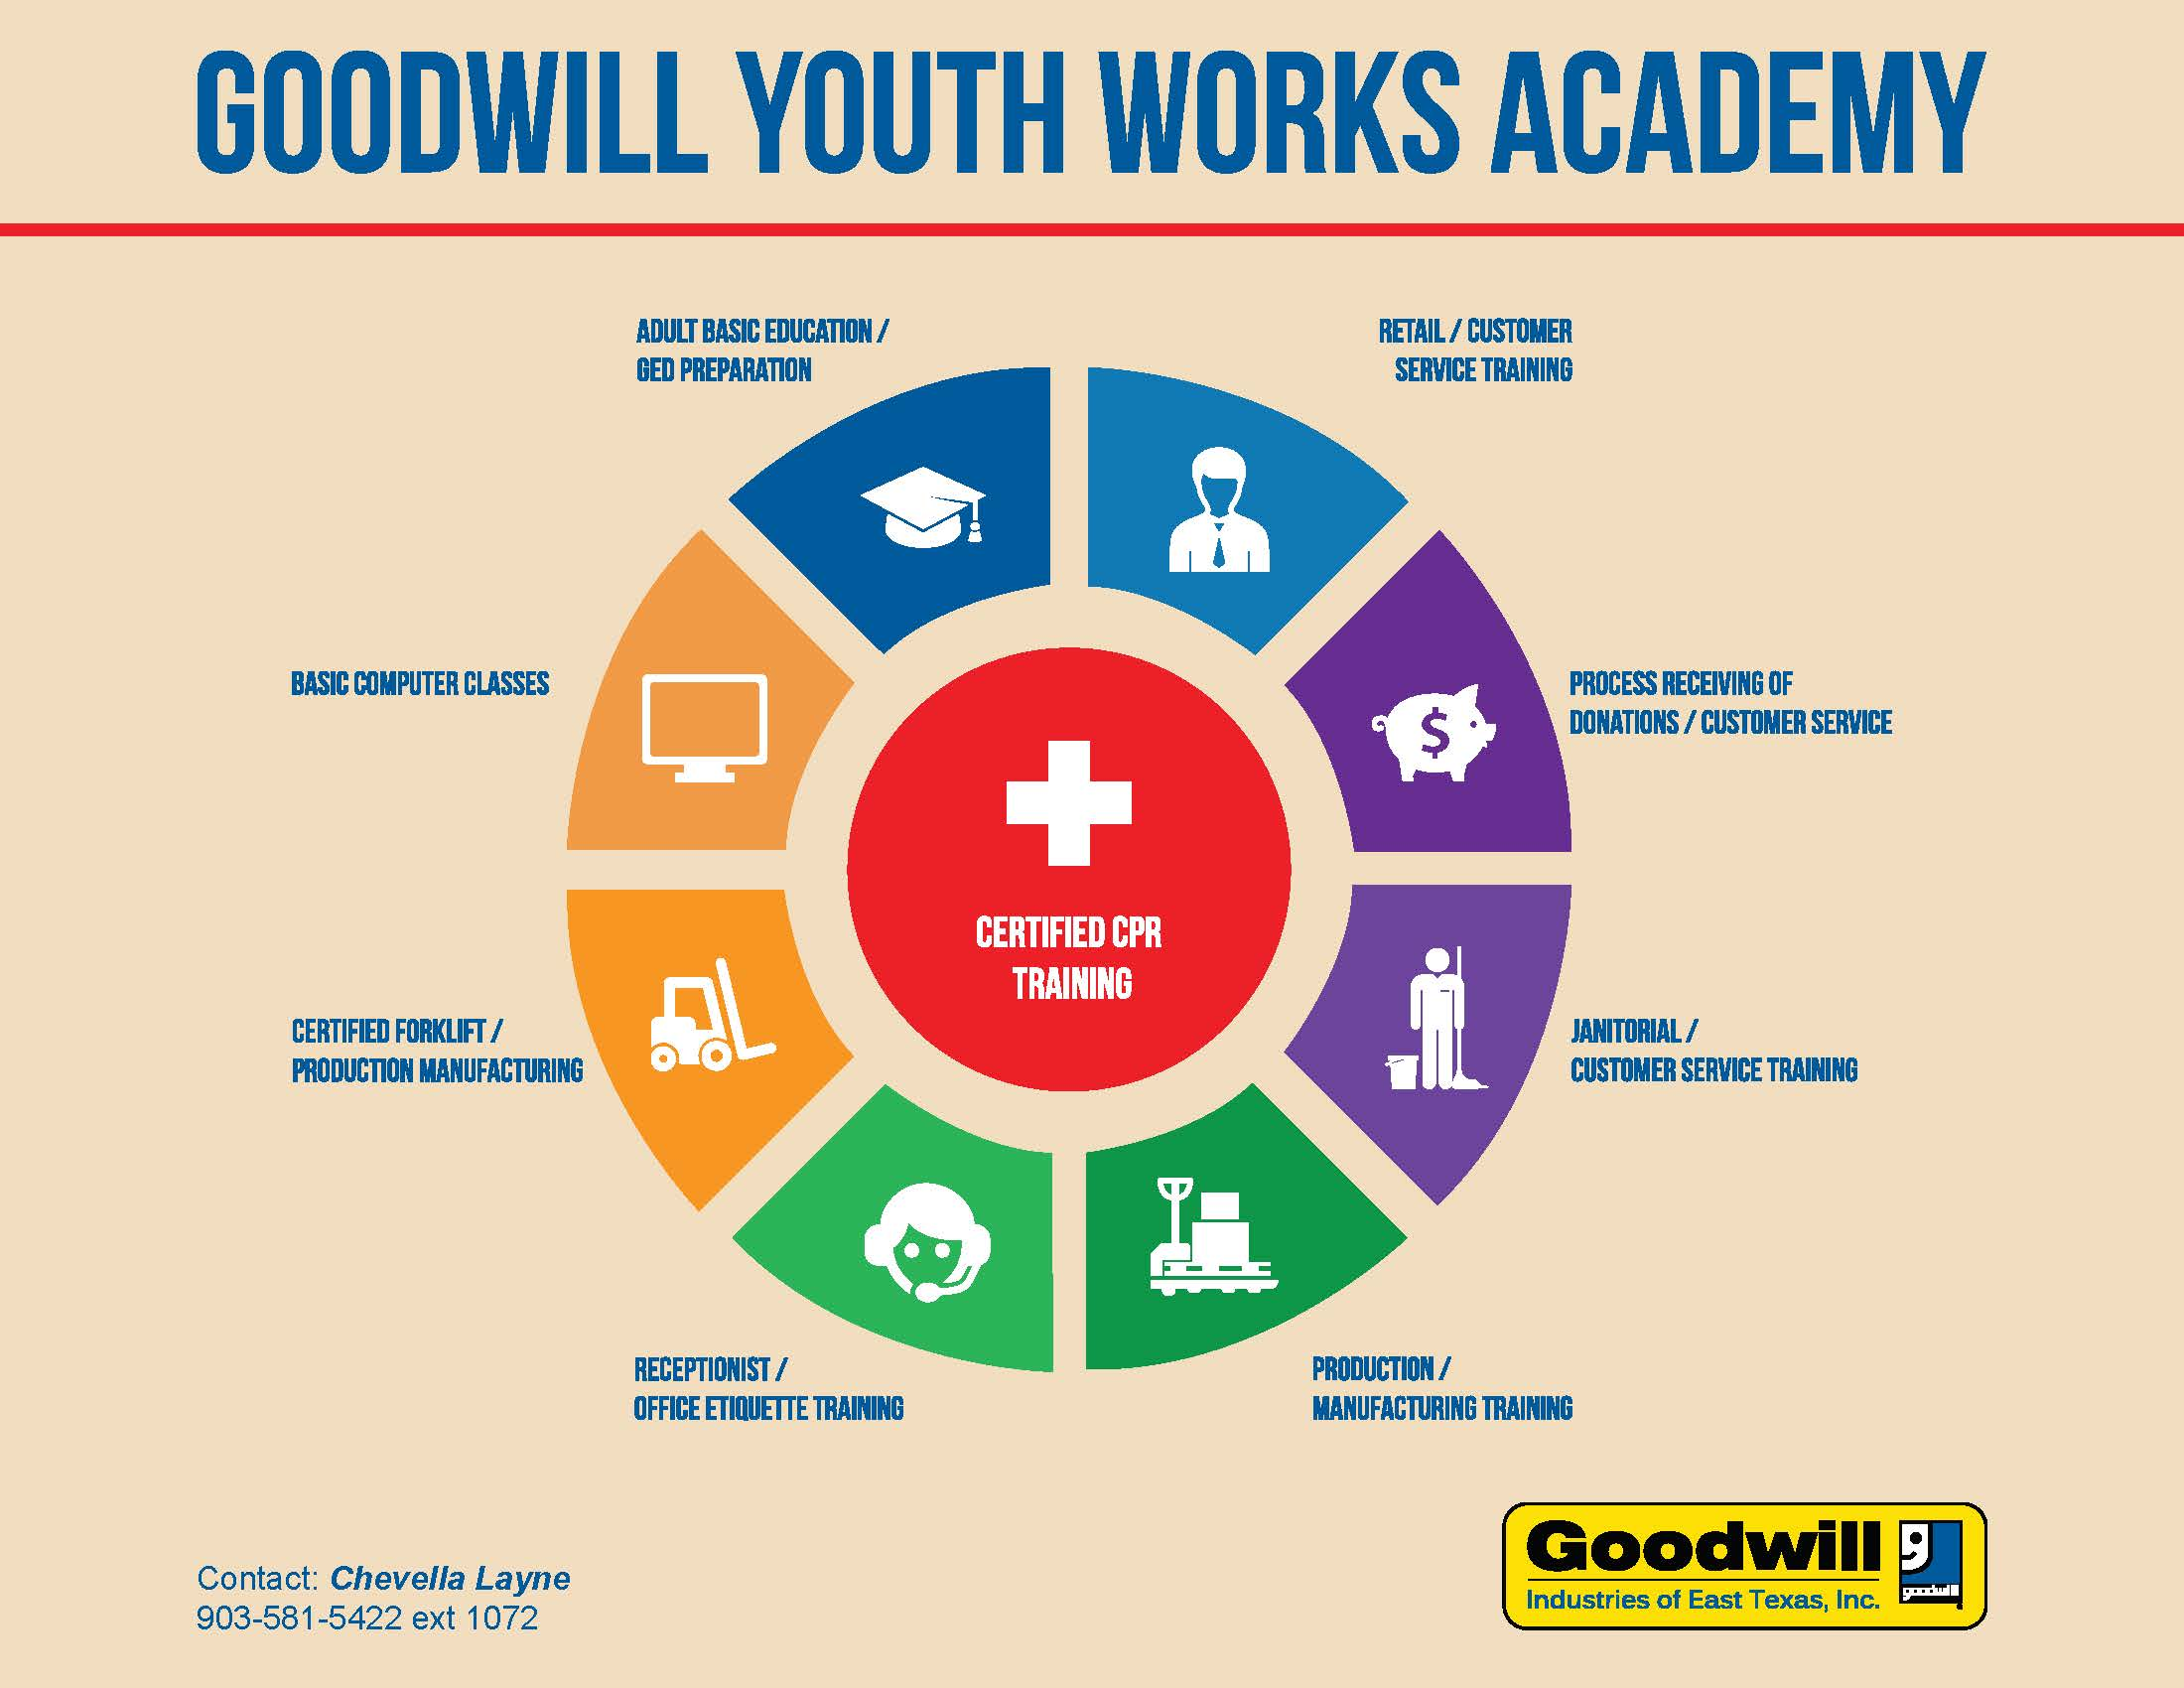 Goodwill youth works academy goodwill industries of east texas inc